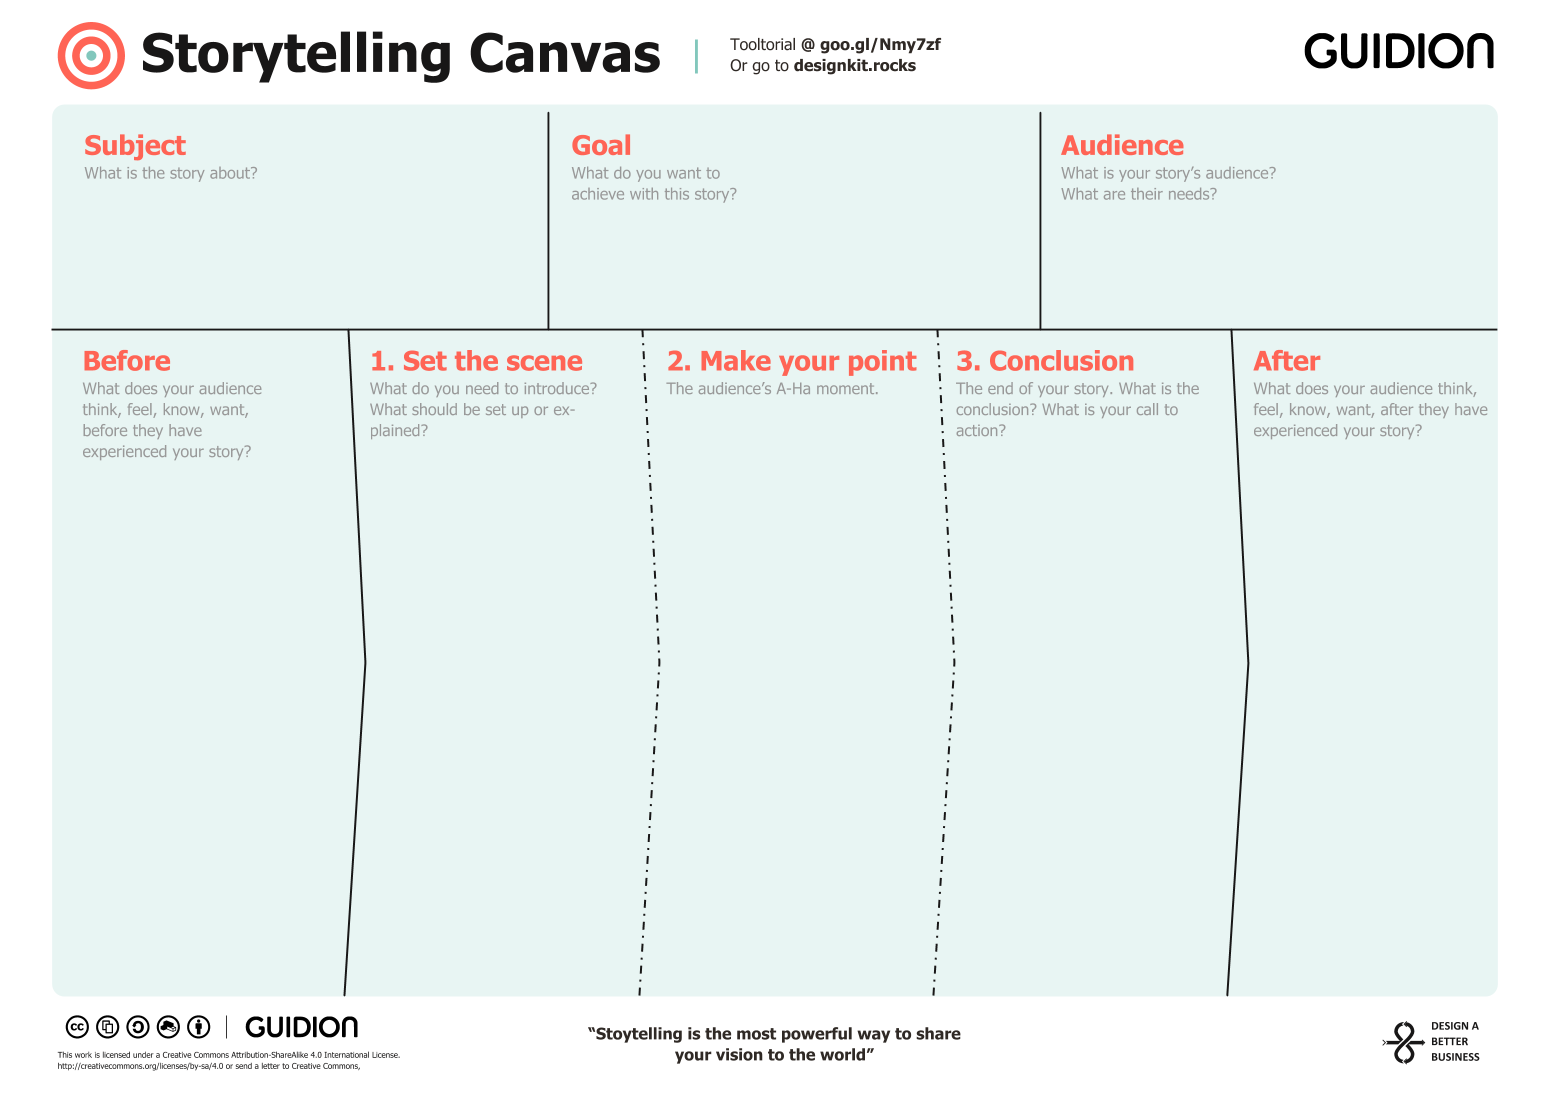 Storytelling Canvas